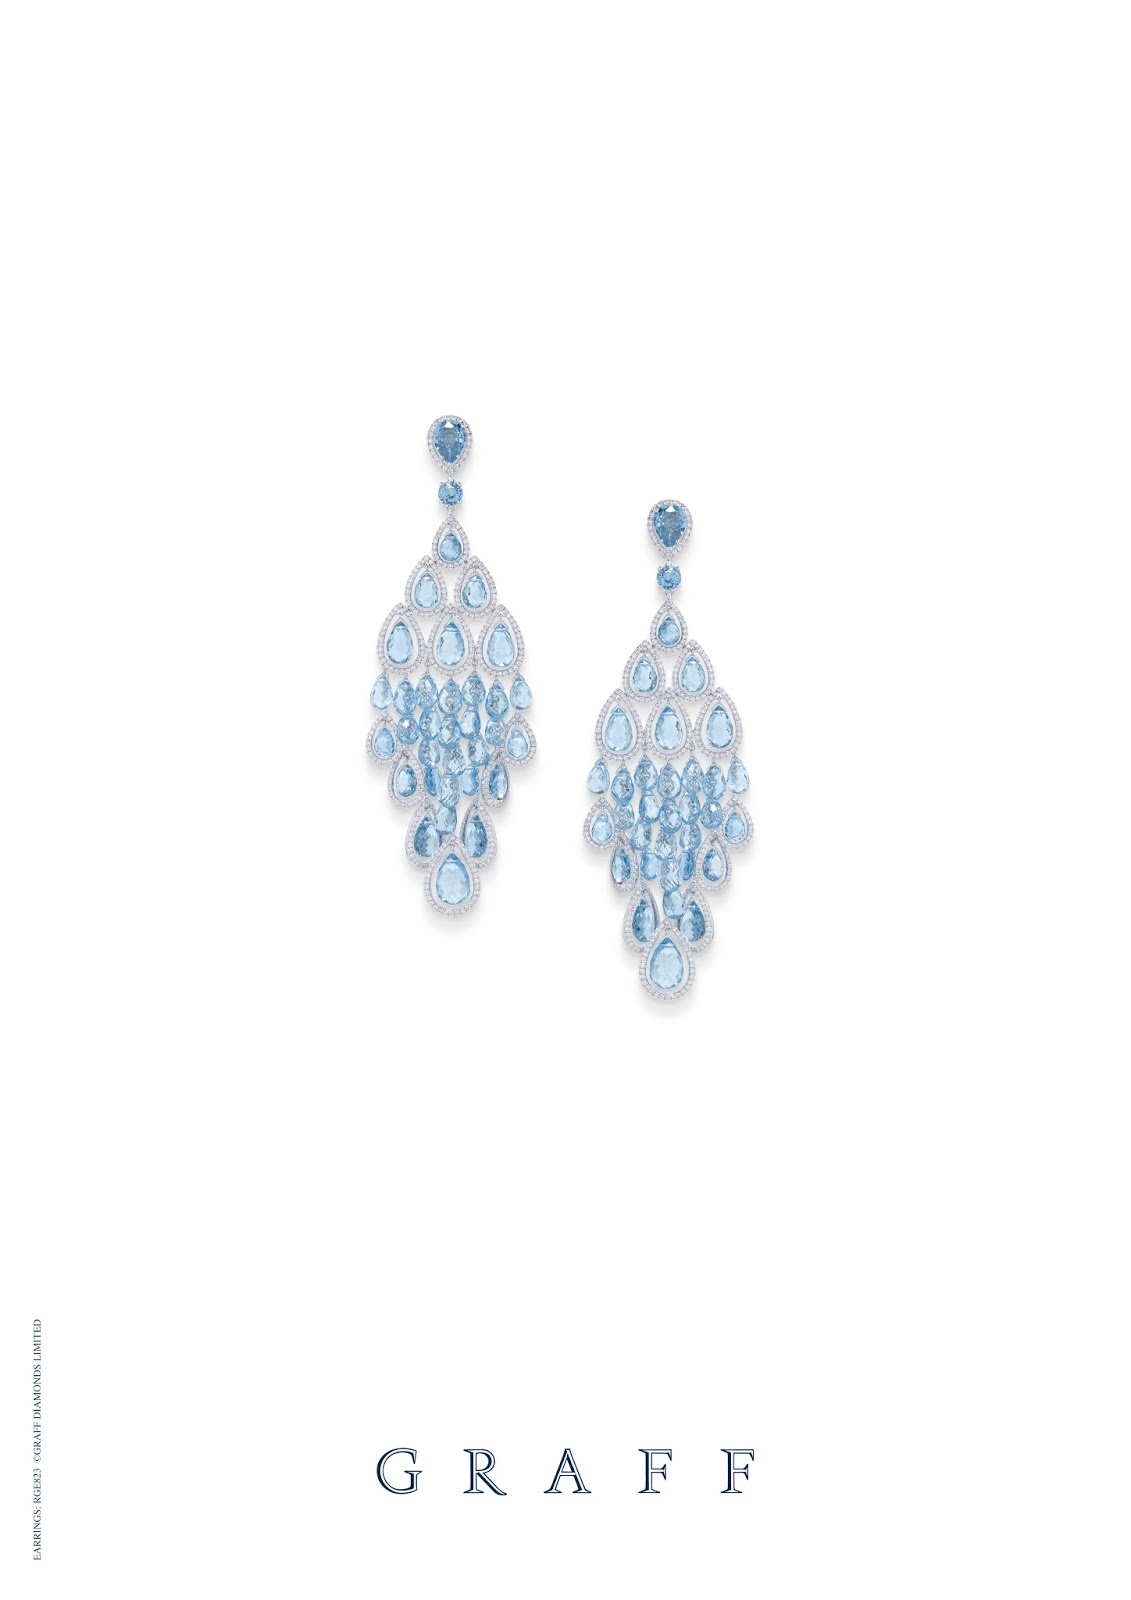 day collection s launches gift earrings traveler shopping elite diamond lifestyle mother diamonds graff mothers